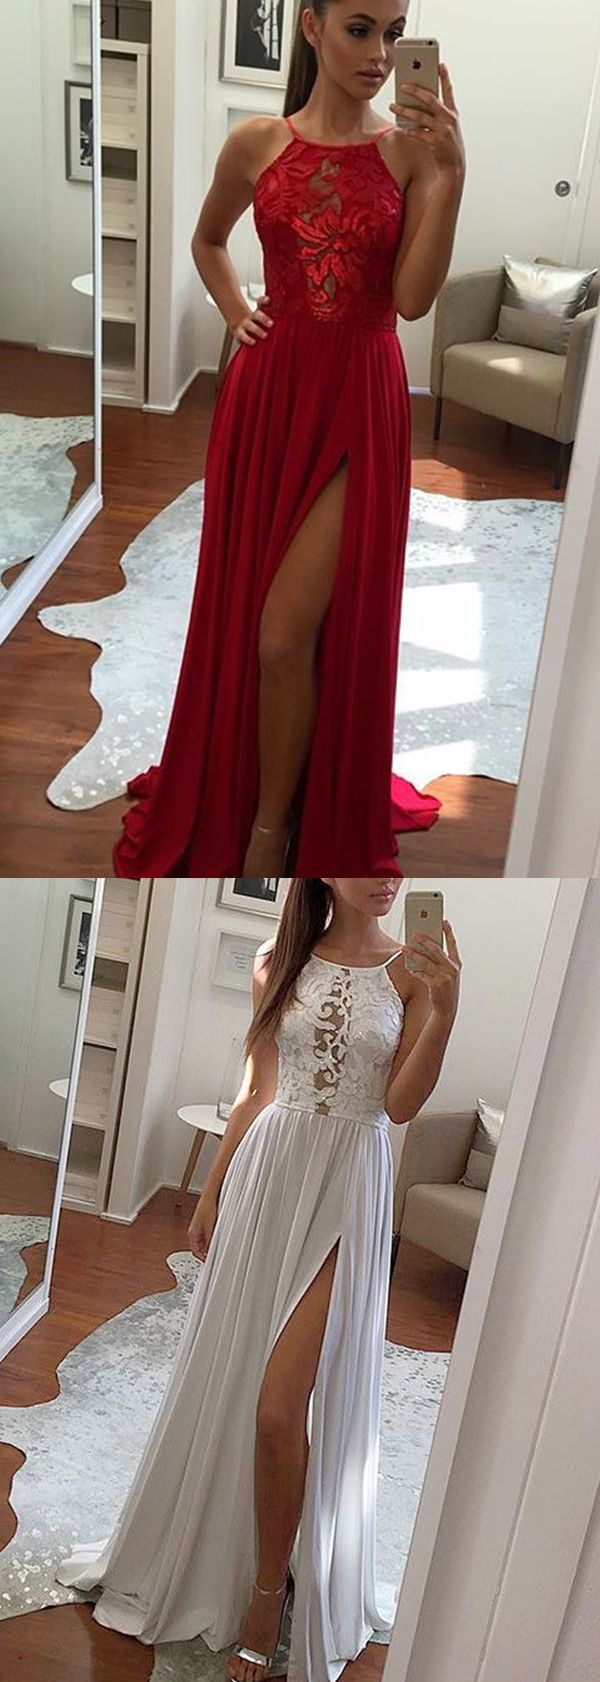 red halter prom dresses, backless long prom dresses, appliques semi formal dress with high slit